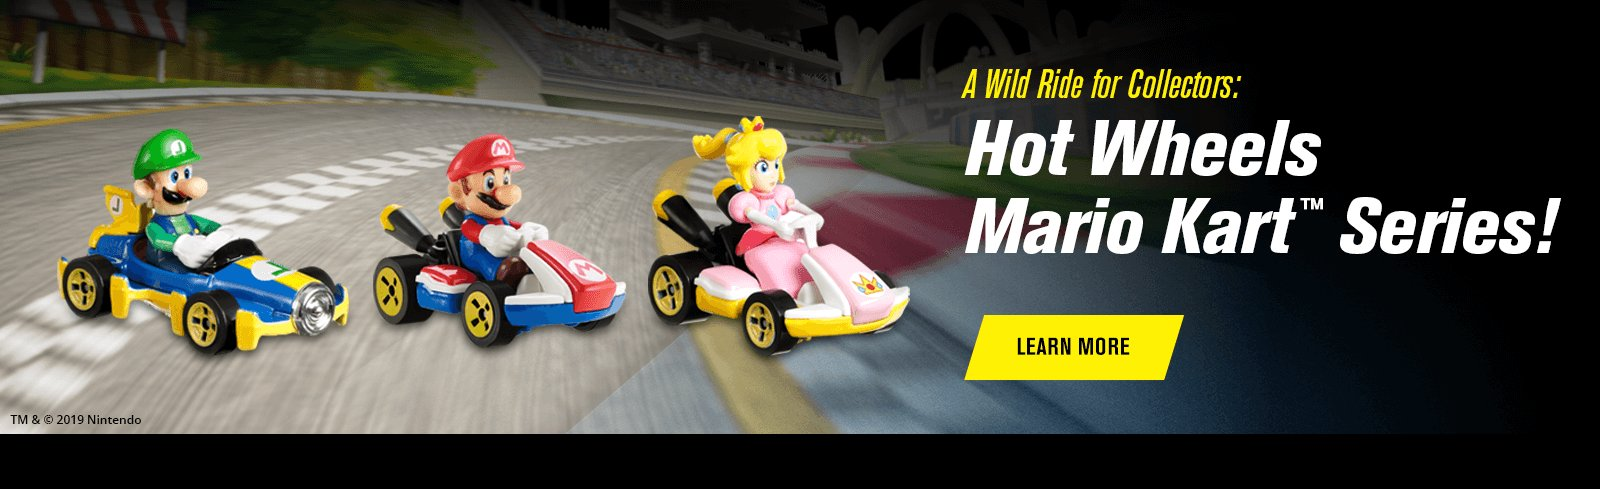 A Wild Ride for Collectors: Hot Wheels Mario Kart™ Series!